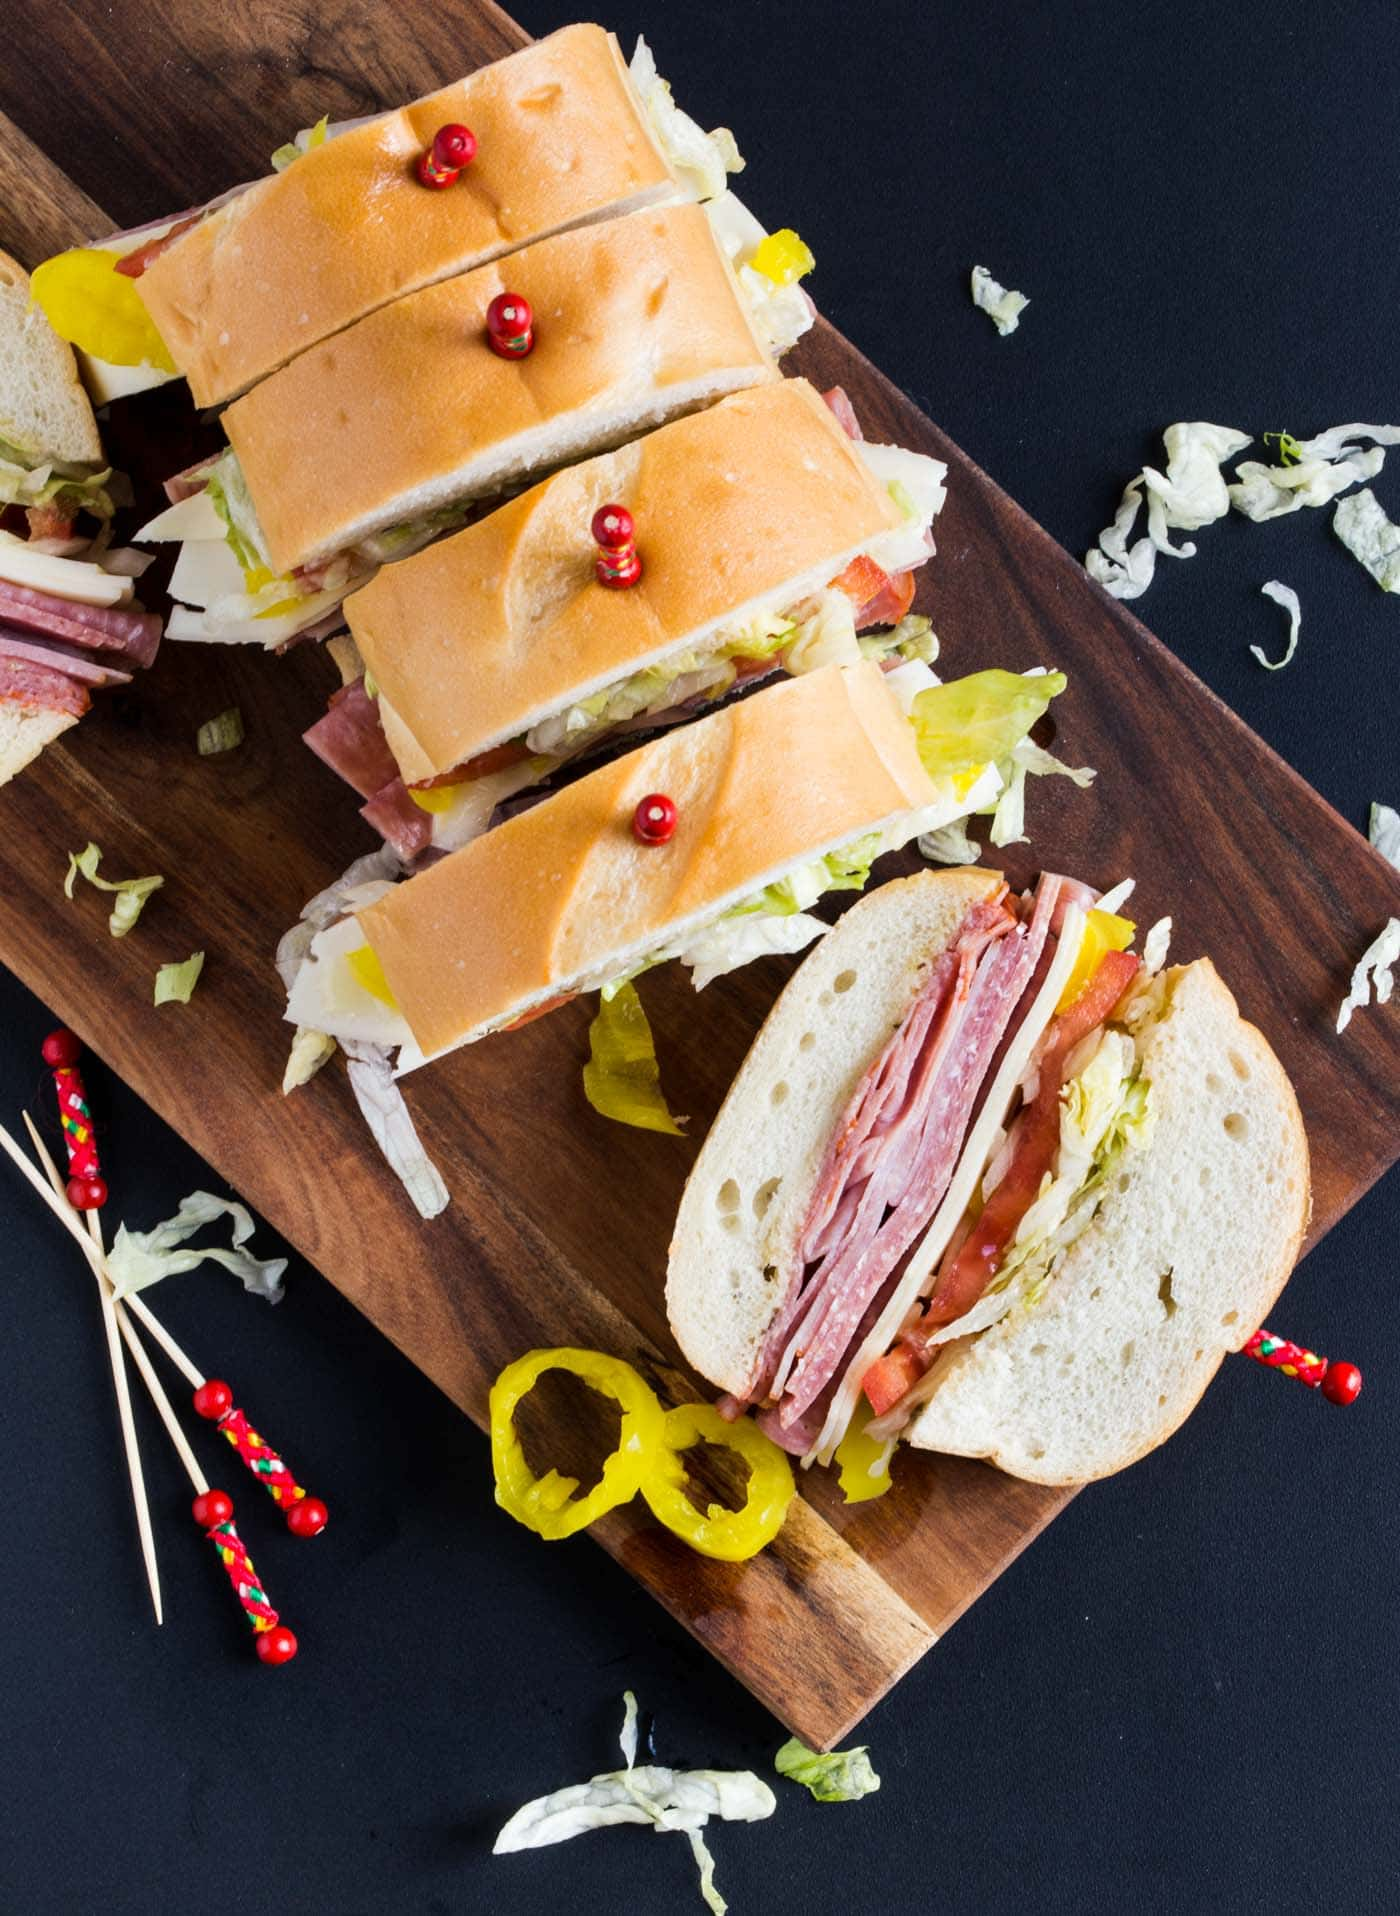 Three meats, provolone cheese and a red wine vinaigrette make this easy Italian Party Sub your go-to recipe for serving a crowd.